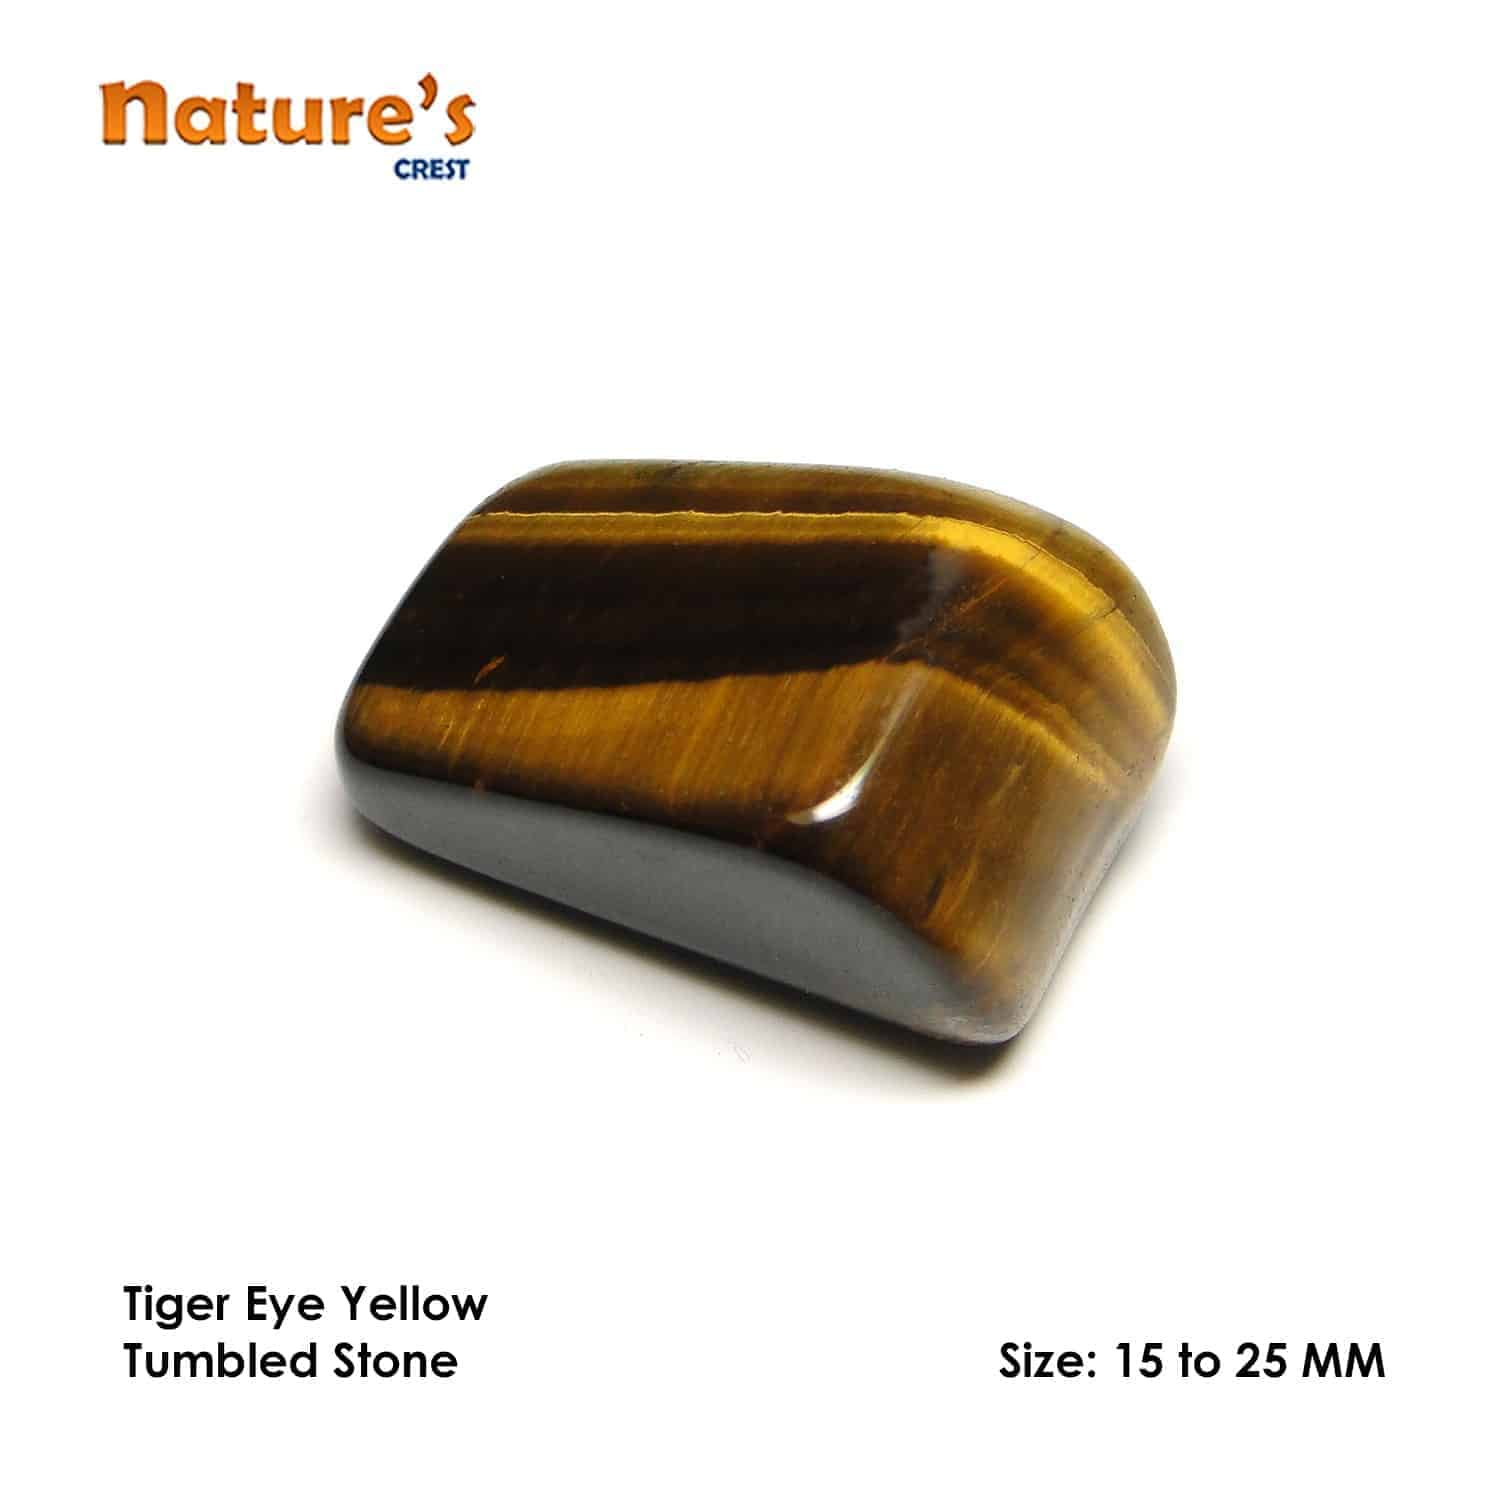 Tiger Eye Yellow Tumbled Pebble Stones Nature's Crest TS022 ₹ 199.00